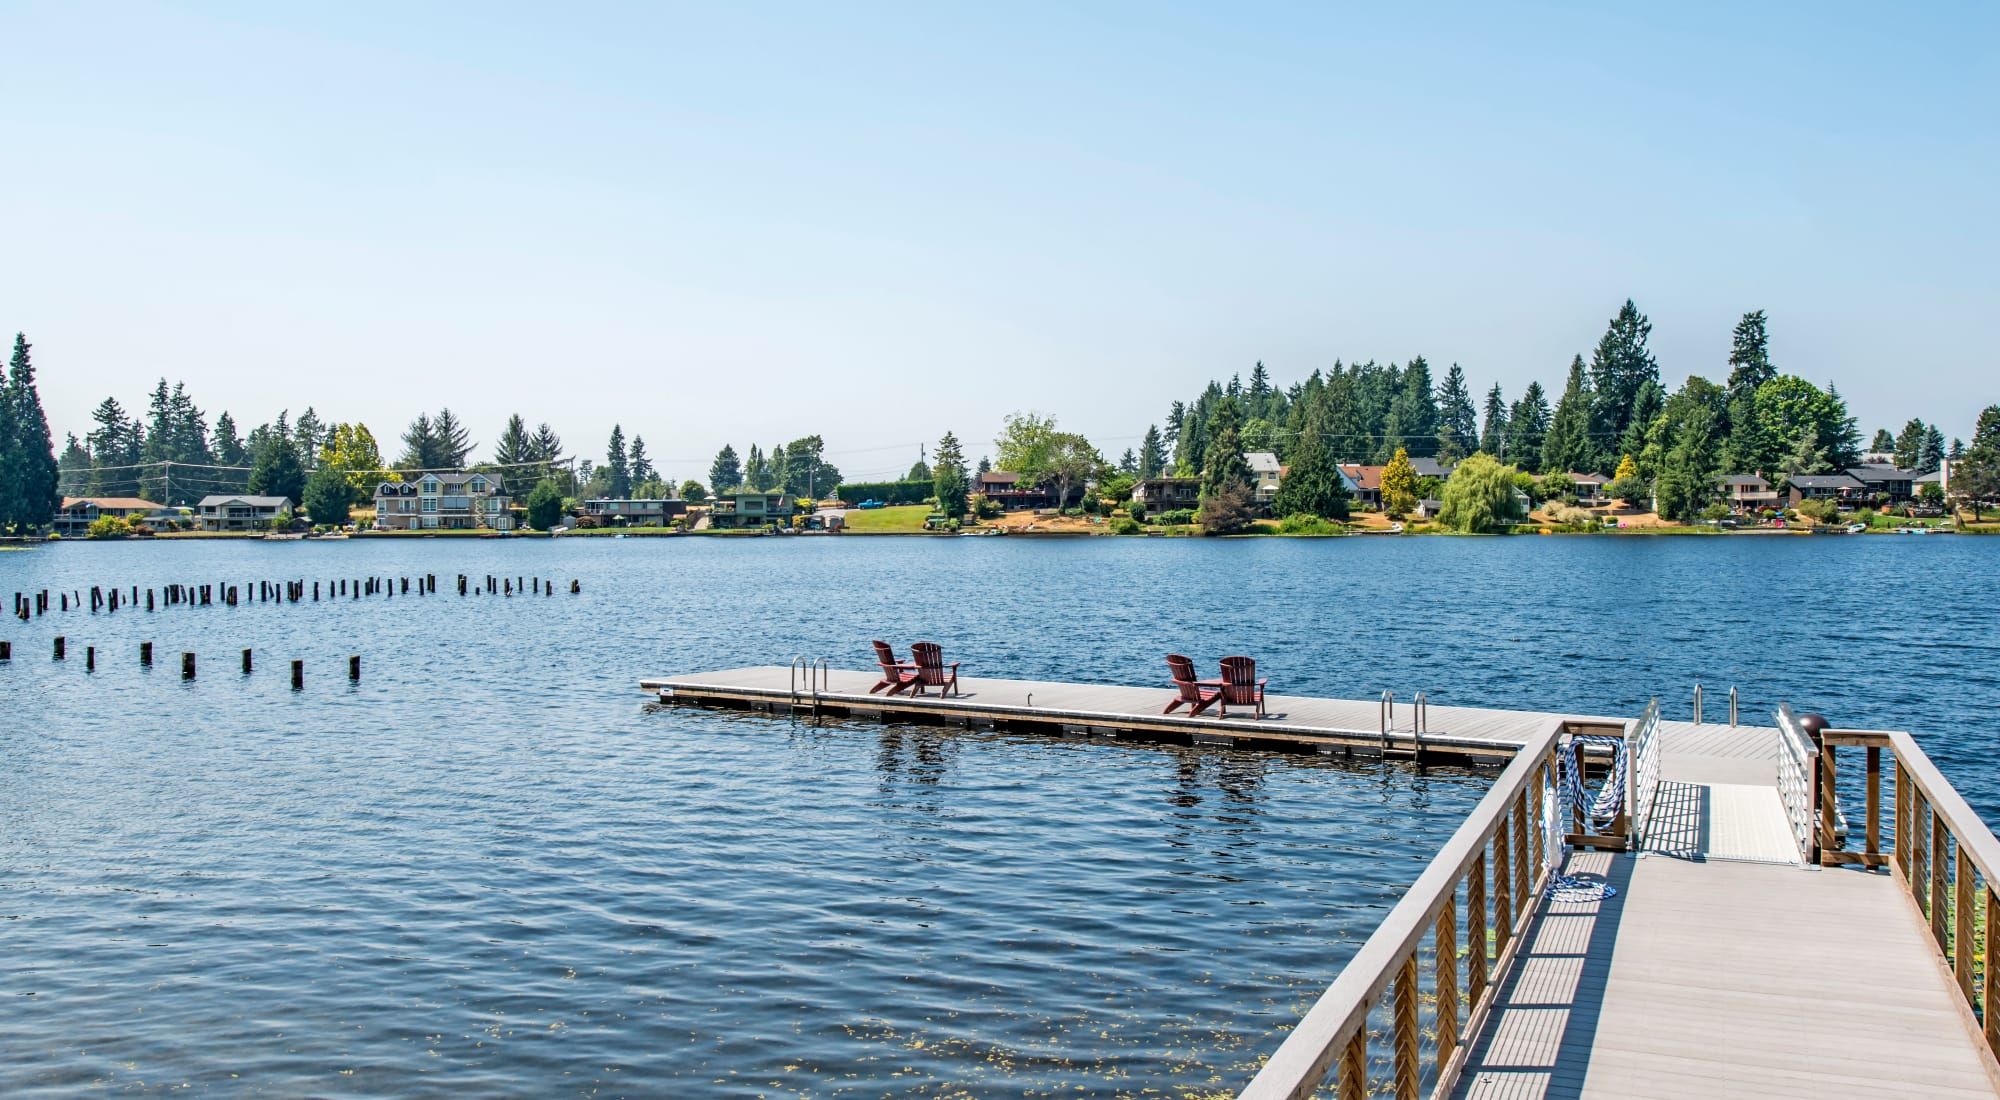 Surprise Lake Village in Milton, Washington